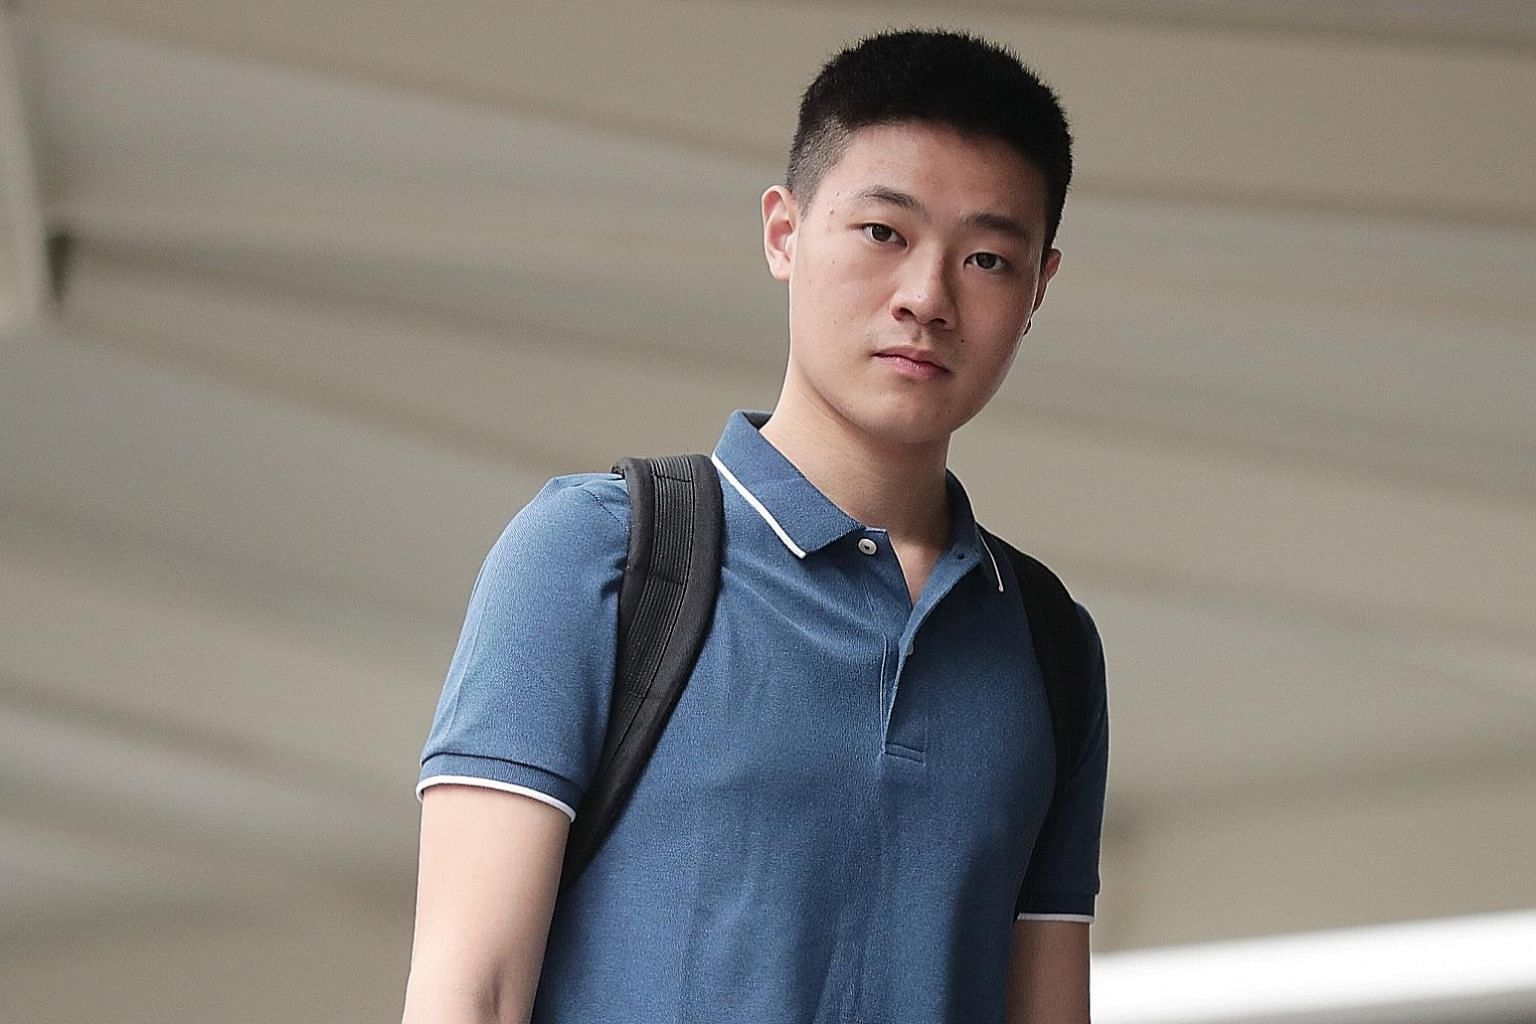 Jonathan Lee Han Wen, a Singaporean, was charged with five offences under the Enlistment Act. He is now out on bail of $10,000.